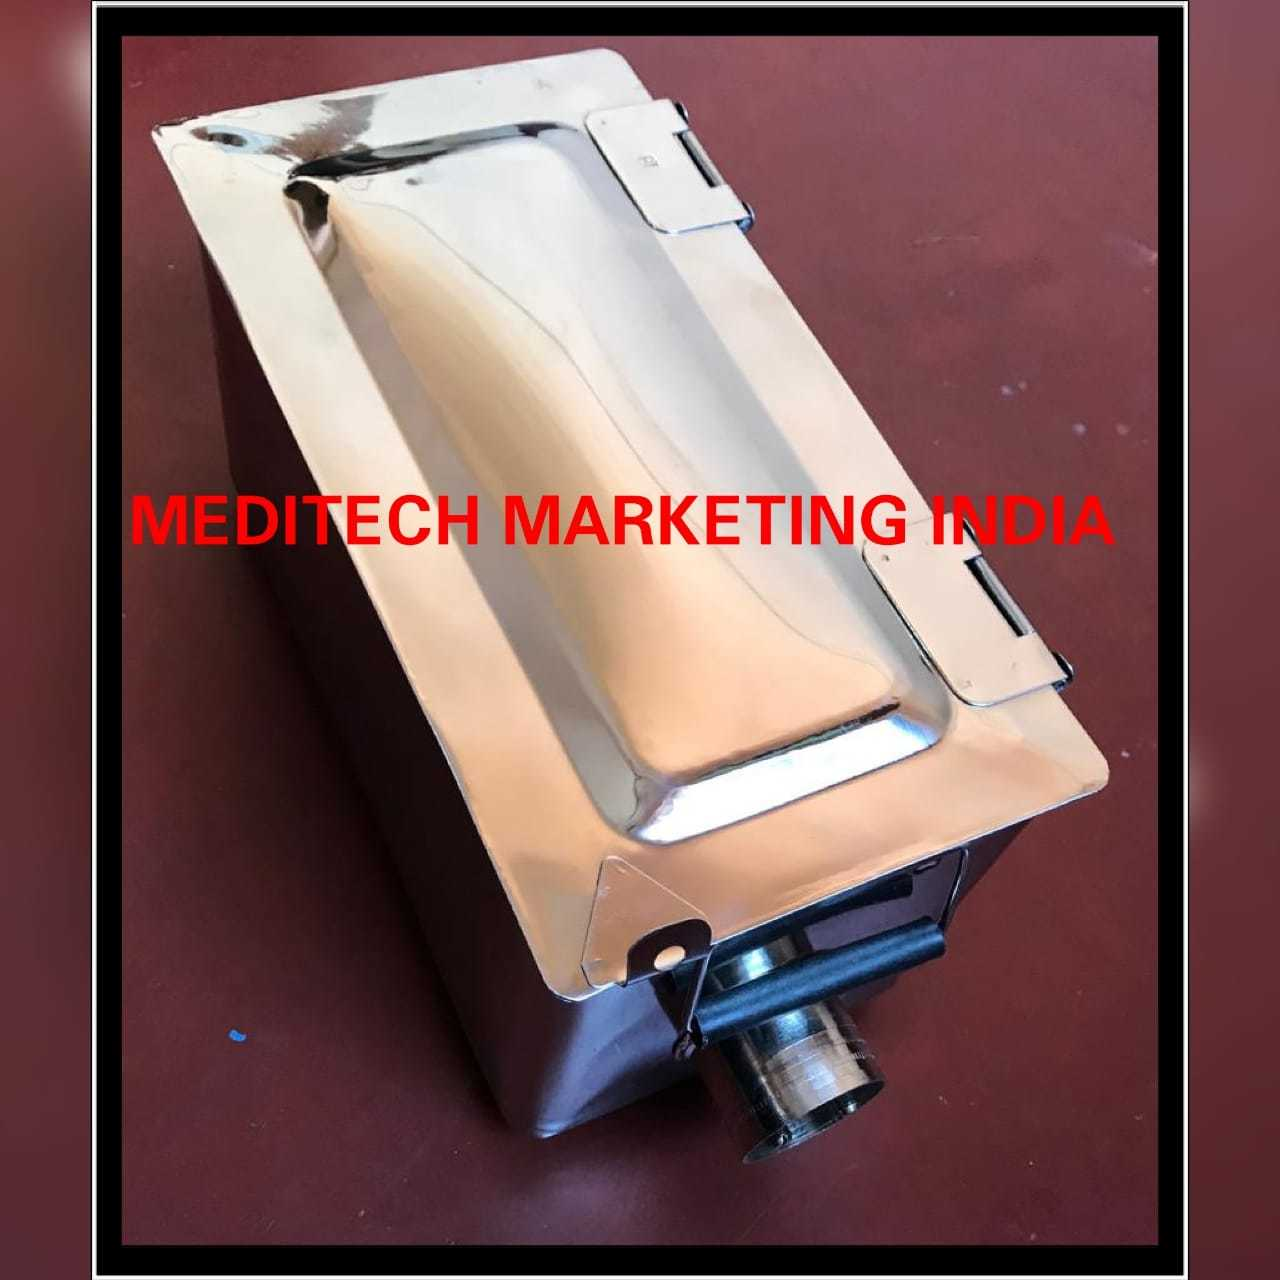 SEMI AUTOMATIC STAINLESS STEEL ELECTRIC INSTRUMENT STERILIZER